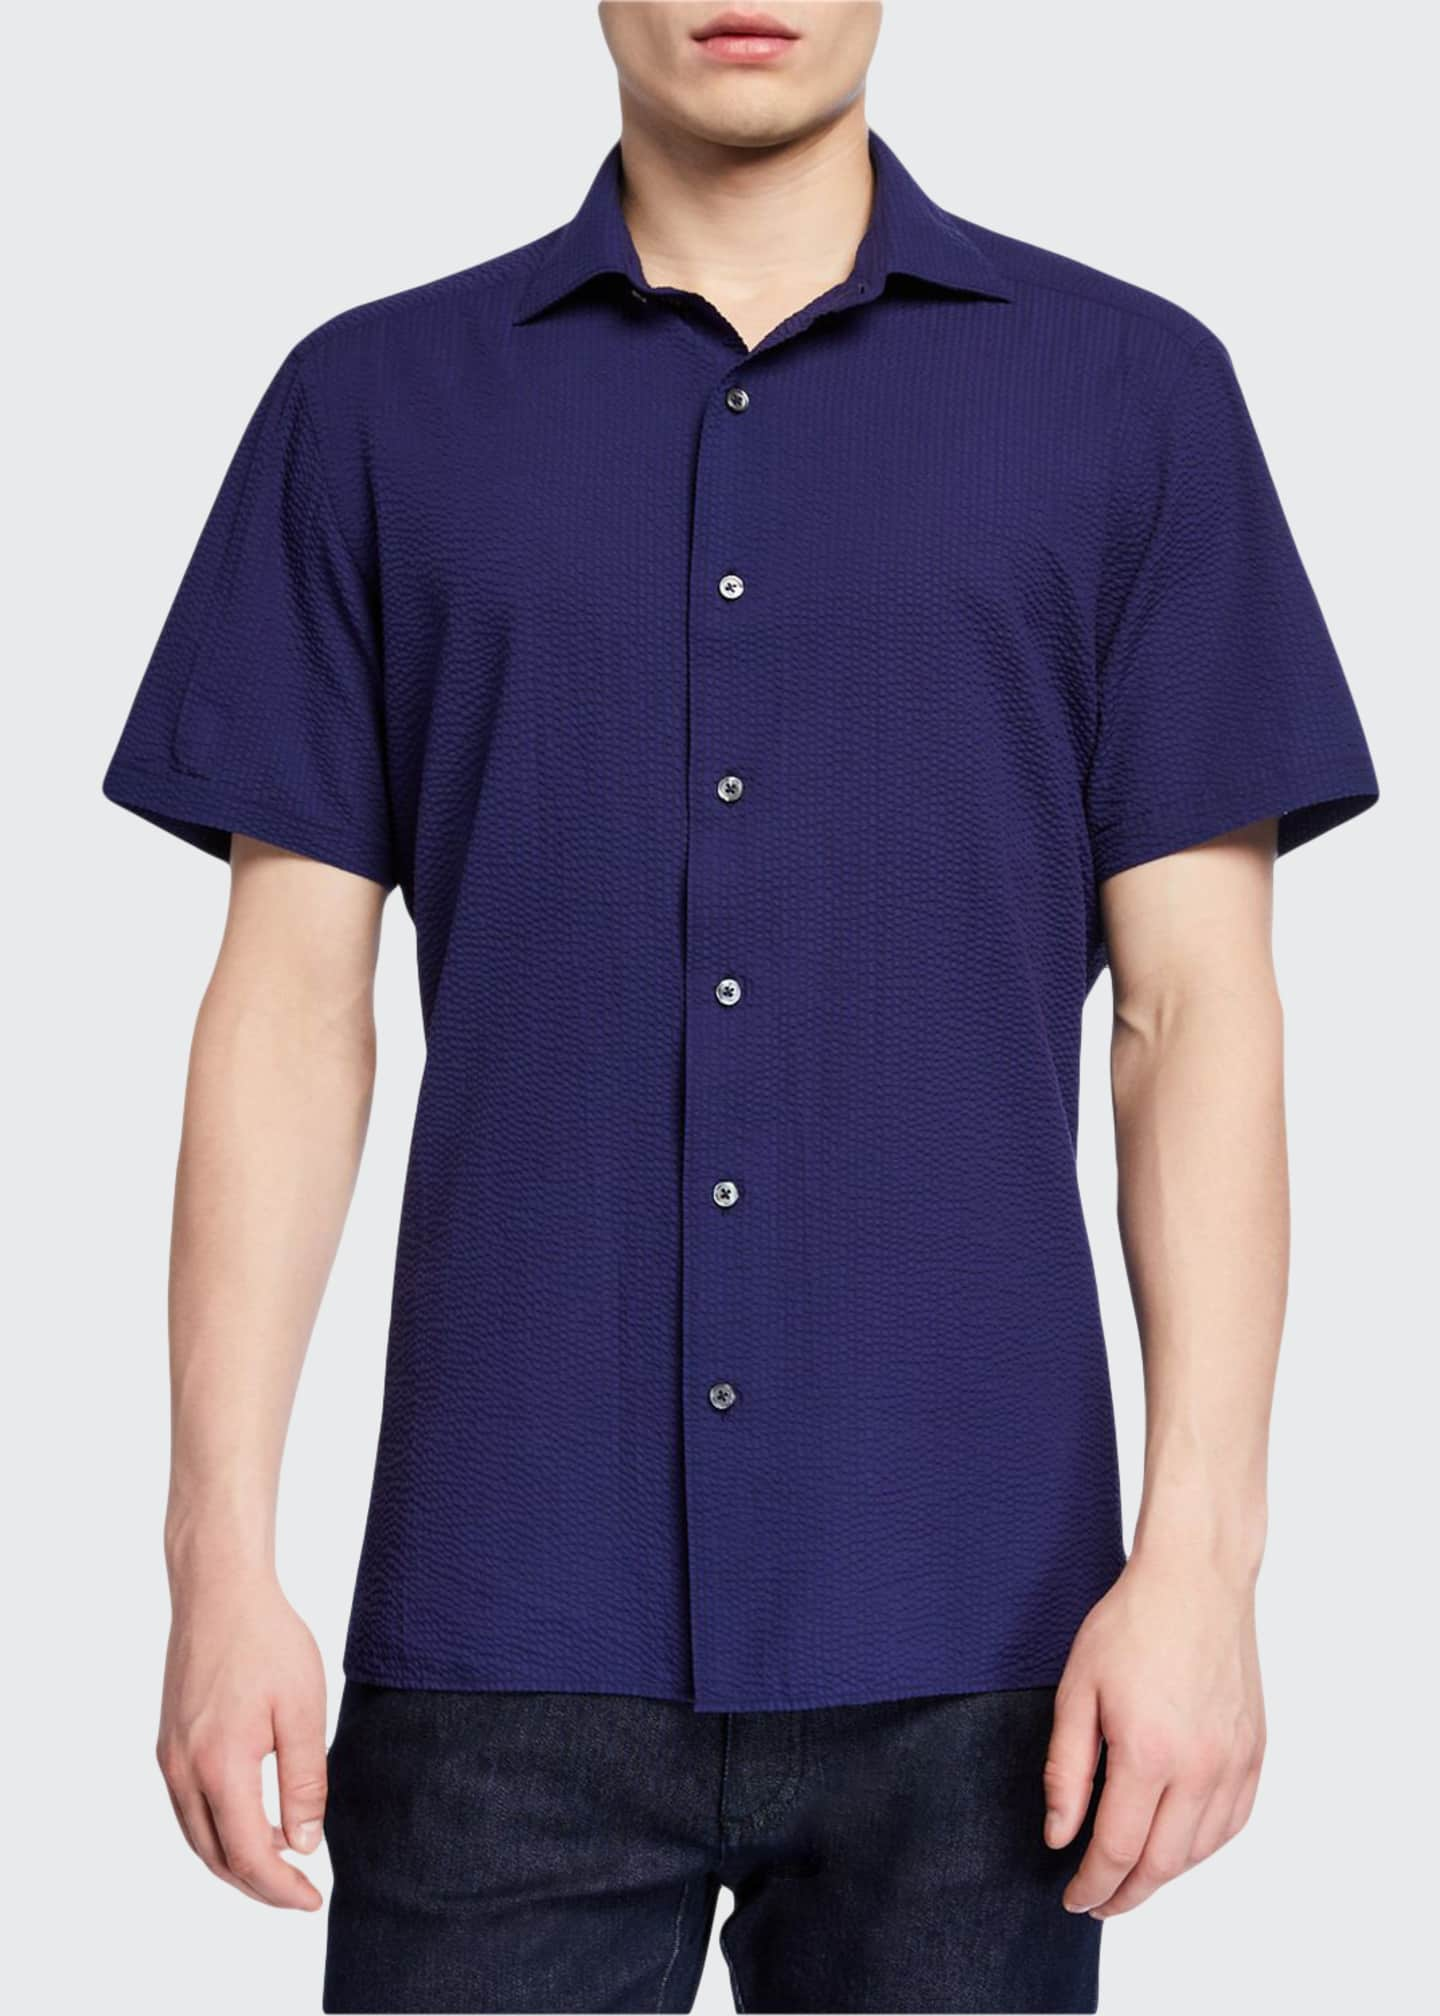 Ermenegildo Zegna Men's Seersucker Short-Sleeve Sport Shirt, Navy